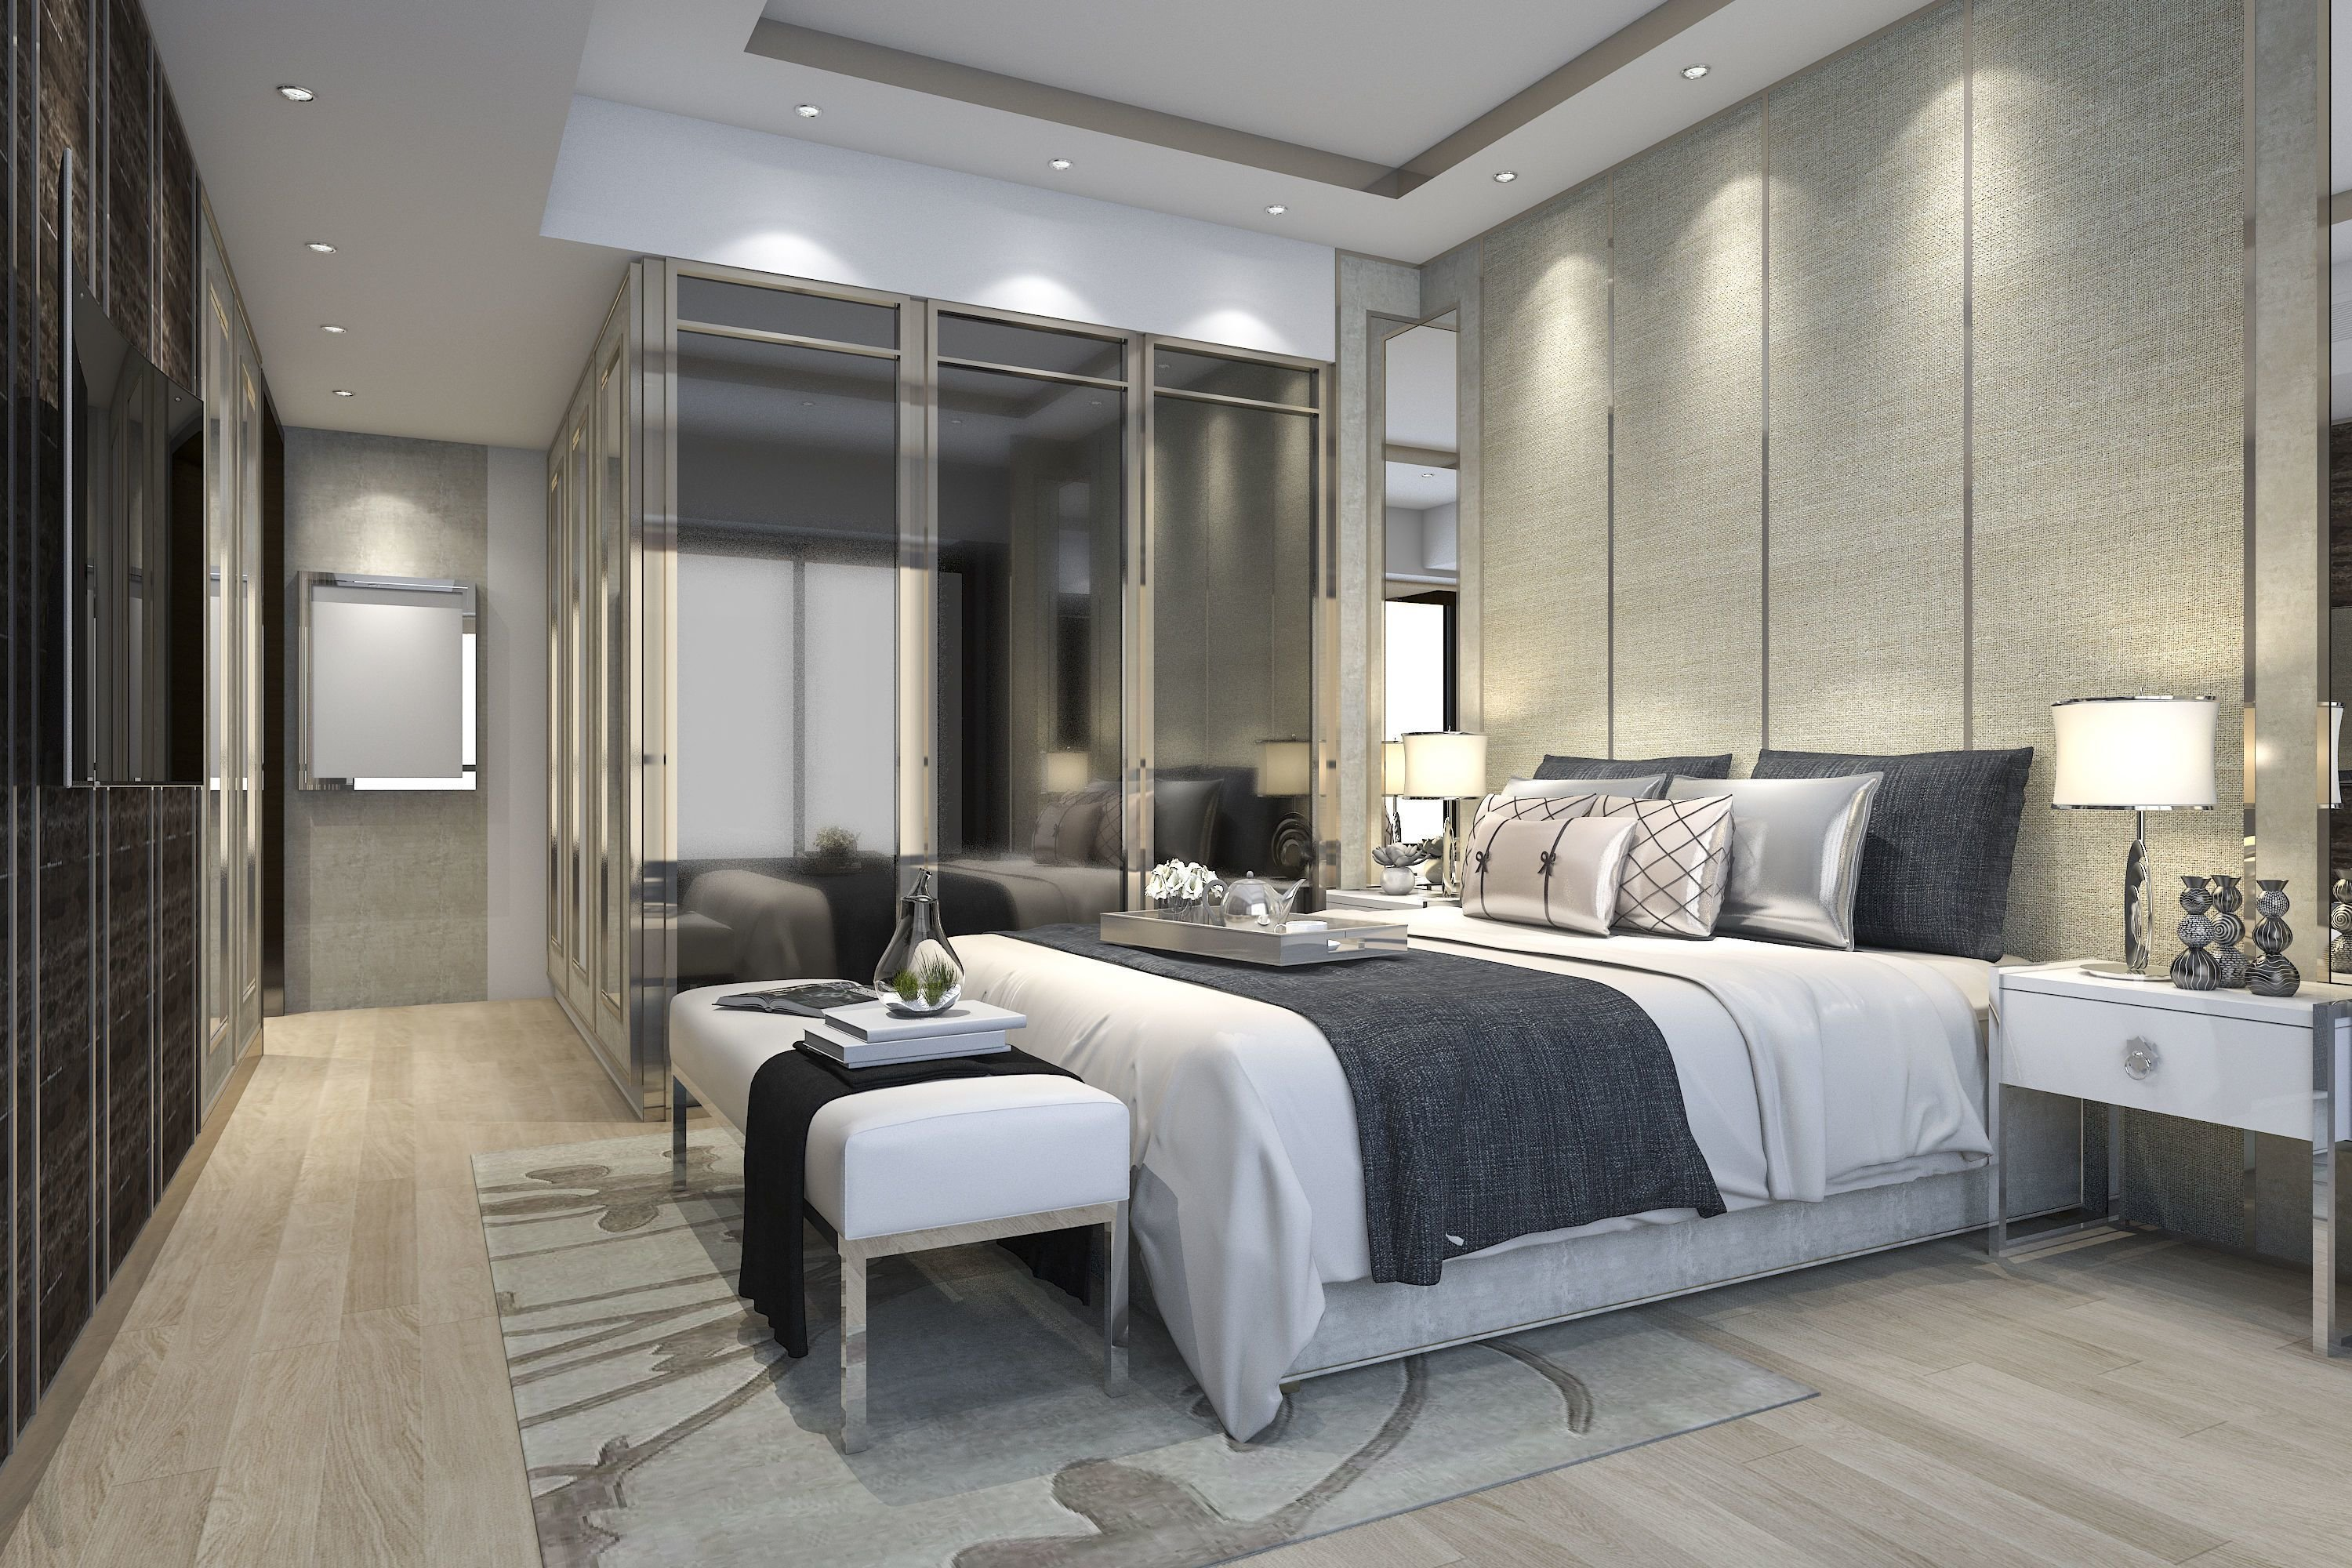 Best Luxury Modern Bedroom Suite In Hotel With Wardrobe 3D With Pictures